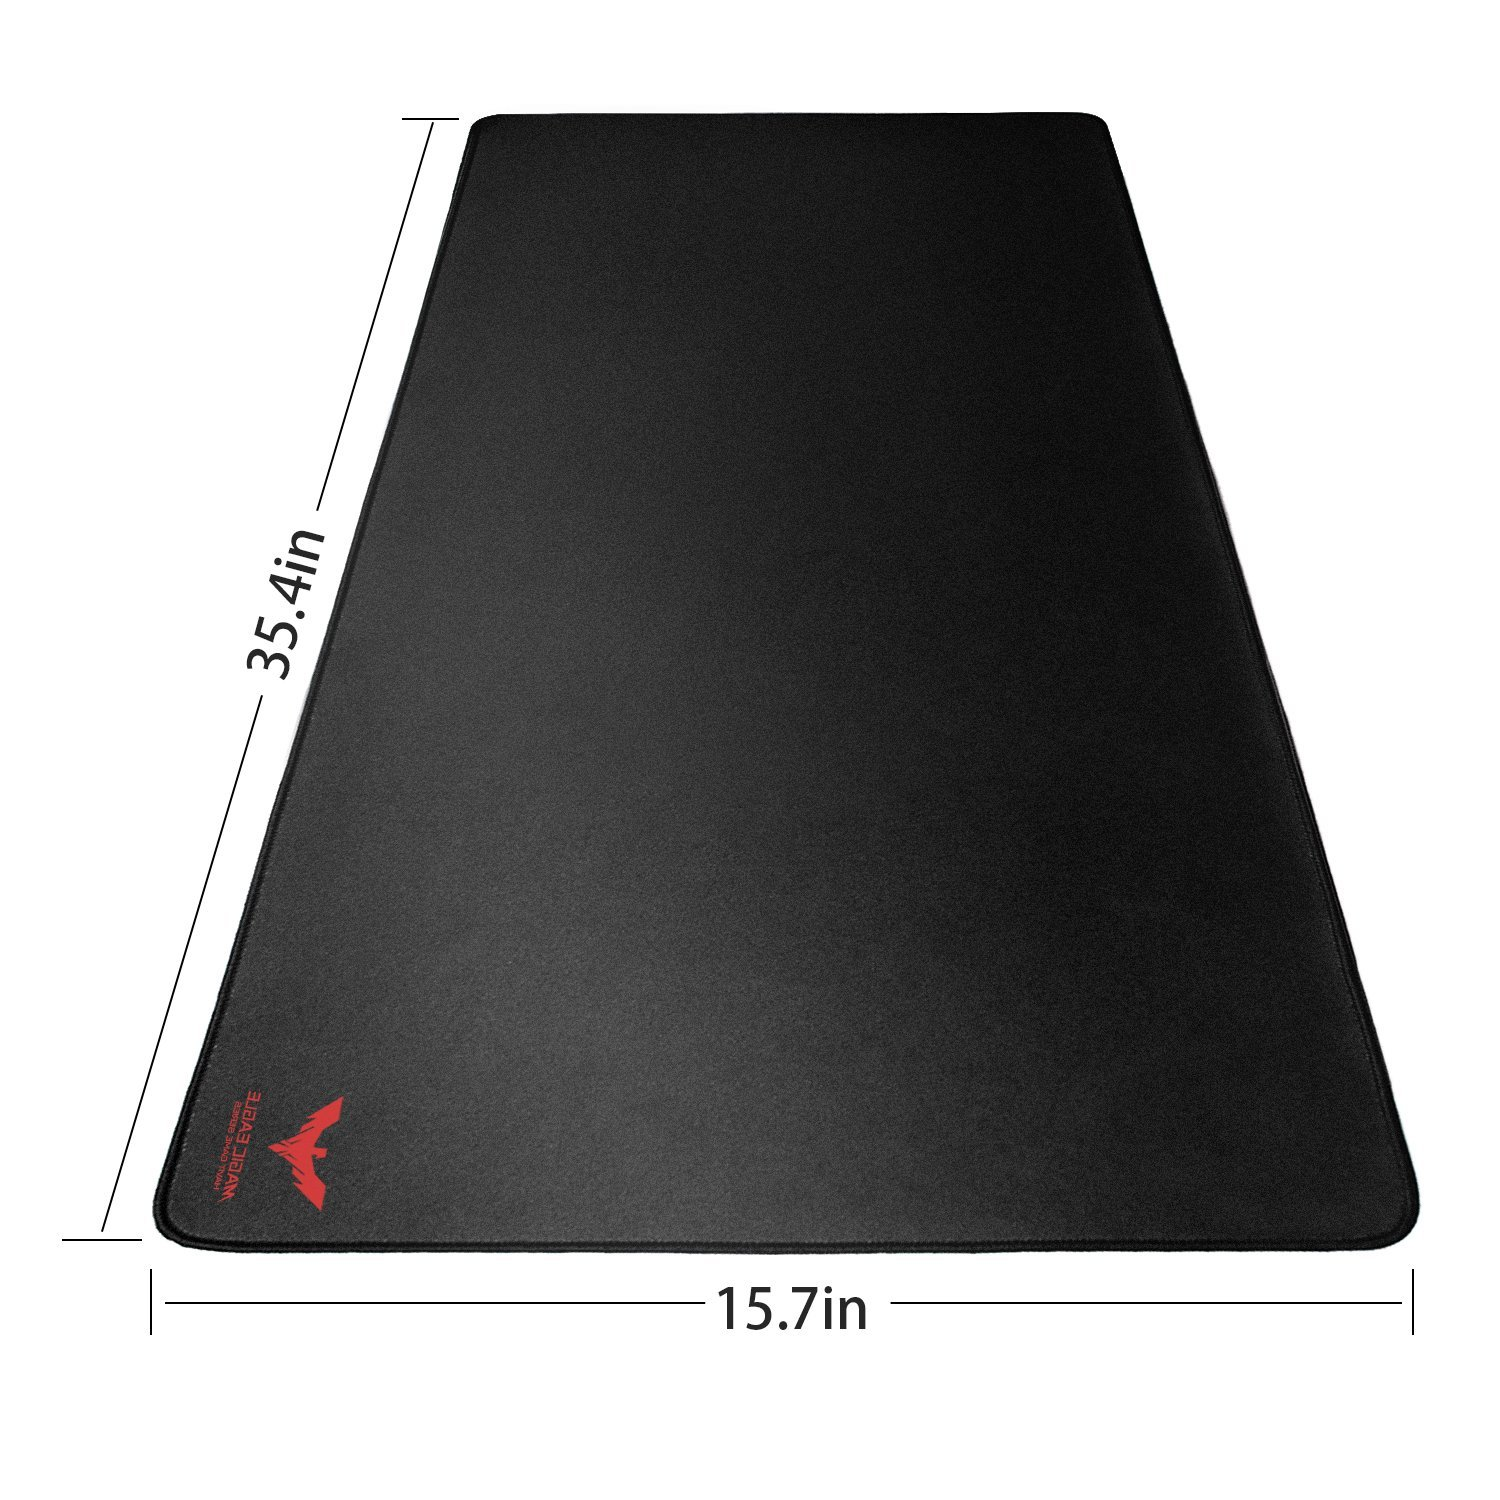 Havit Extended Large Gaming Mouse Pad, Non-Slip Rubber Base-36'' X 16'', 3mm Thick, Black (HV-MP855) by Havit (Image #2)